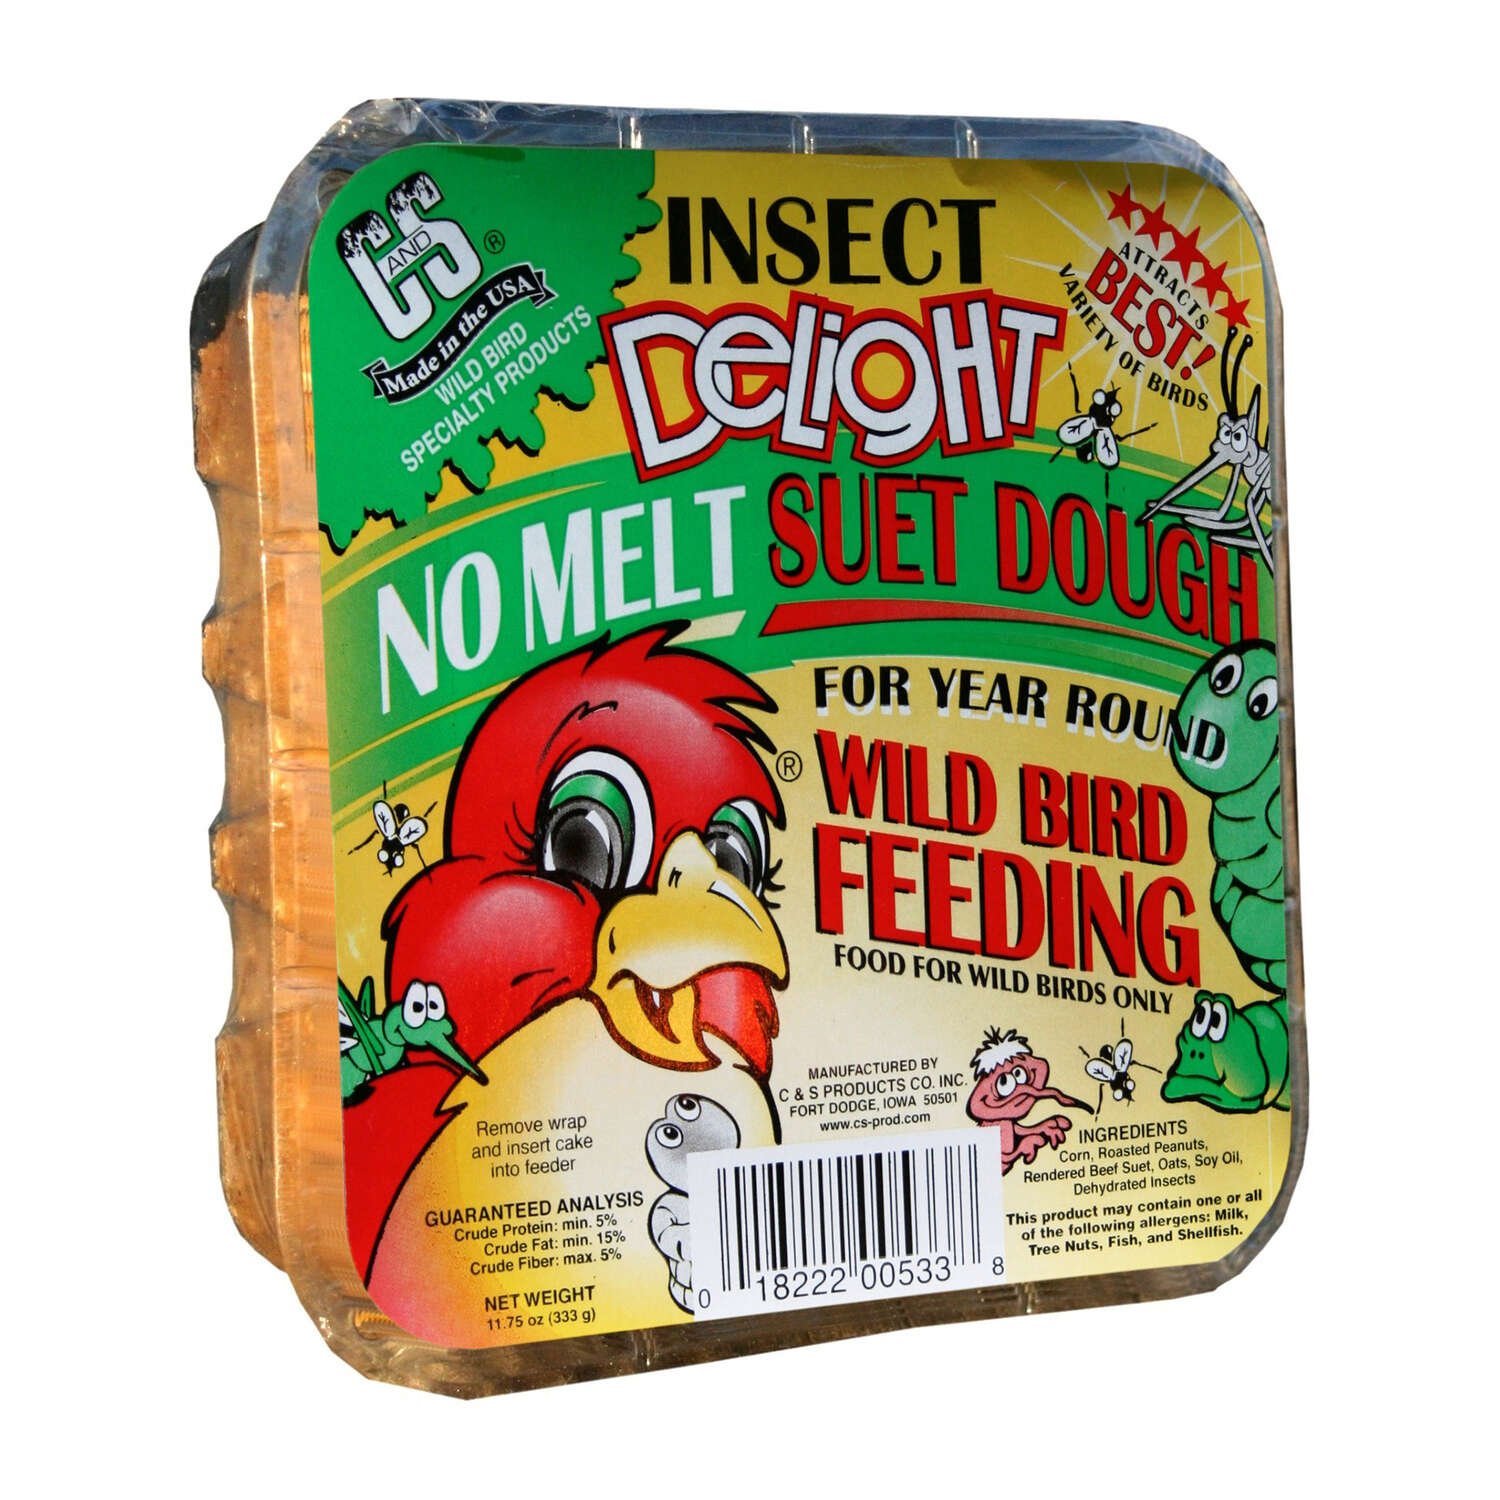 C&S Products Insect Delight Assorted Species Beef Suet Wild Bird Food 11.75 oz.